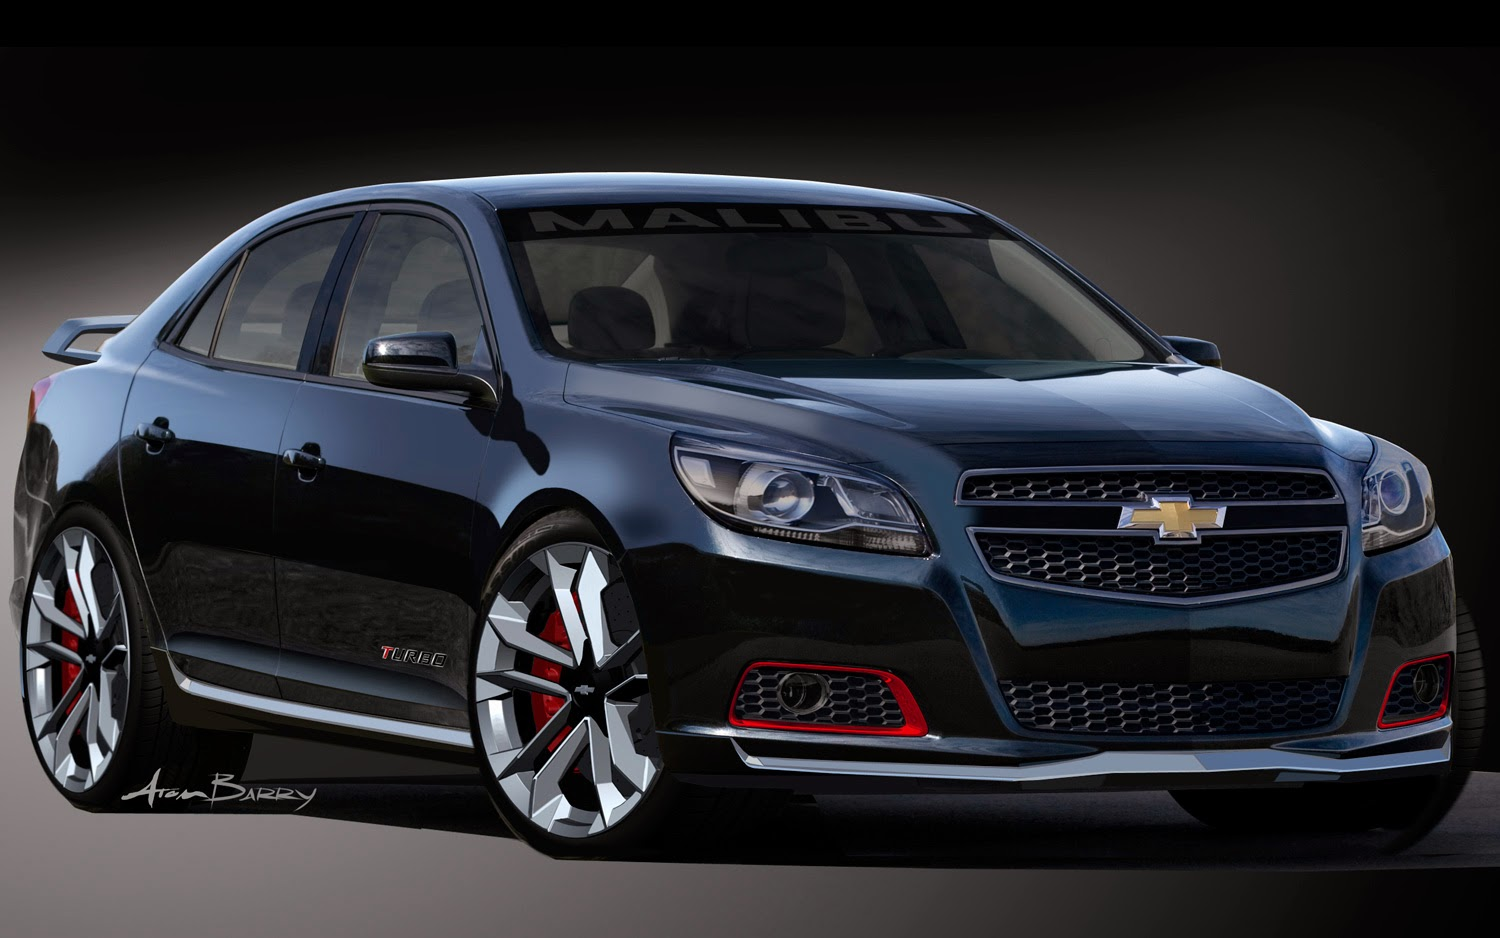 2014 Chevrolet Malibu Colors Black Wallpapers Gallery Download